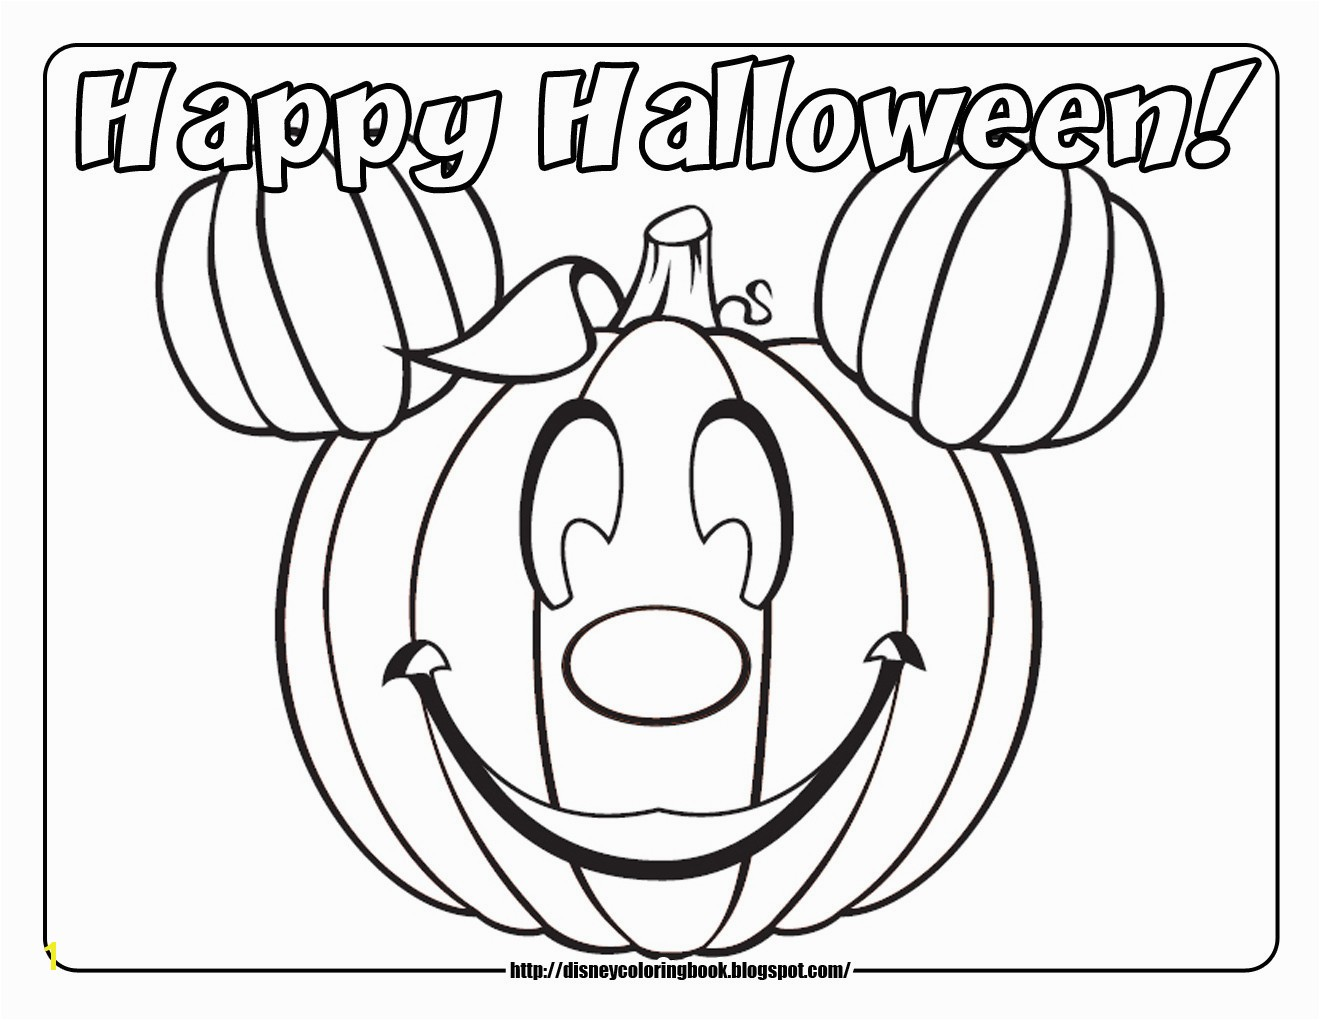 Free Halloween Coloring Pages For Kids Printable Printable Home Coloring Pages Best Color Sheet 0d